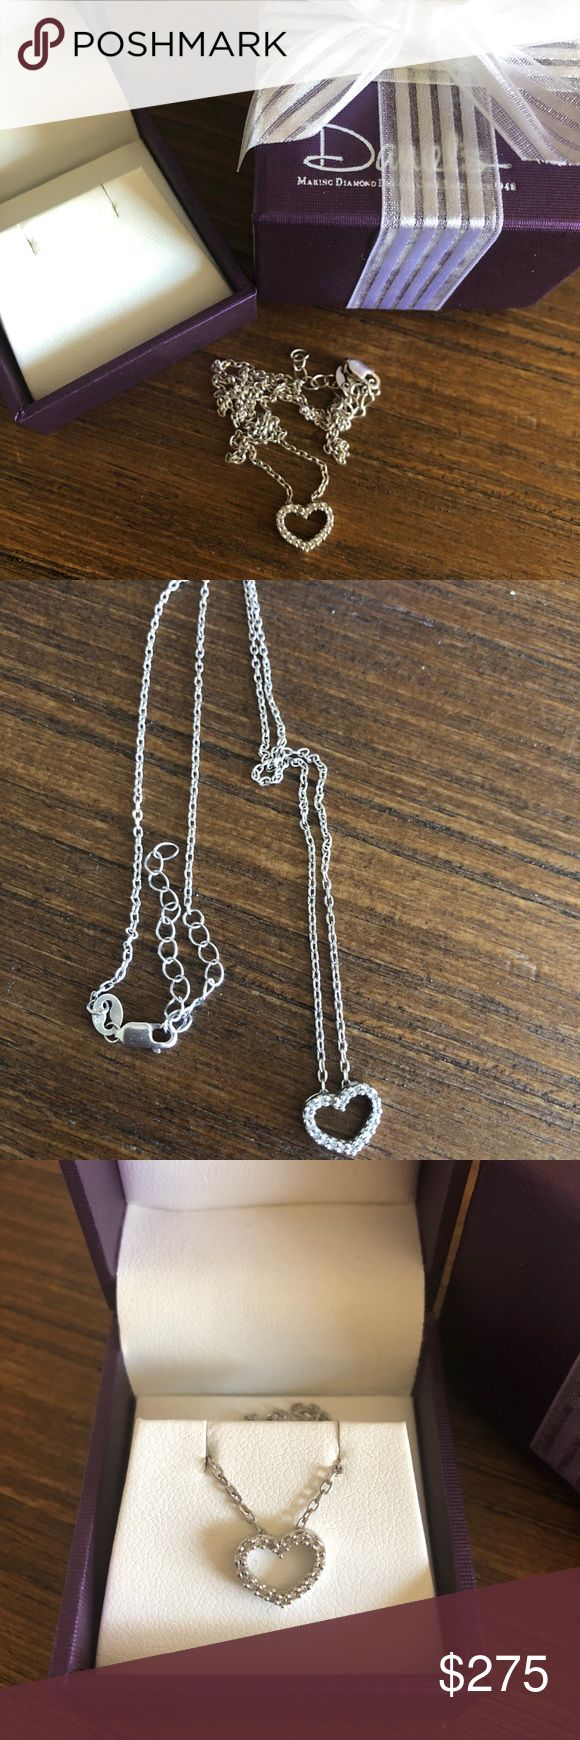 Heart Necklace 1/12CTW Diamonds & 10K White Gold Brand new Product Description Lovely 1/12CTW Diamond Heart Pendant is beautifully designed with 20 Round Diamonds set in 10K White Gold and comes with an 18 inch Rope Chain by Daniel's Jewelry  The chain has a stamp 925 And the heart has a 10K stamp Never used  It comes with the box gift box and a gift bag I got this as a gift and I don't have the price tag never used I don't have the gift receipt daniel's Jeweler Jewelry Necklaces